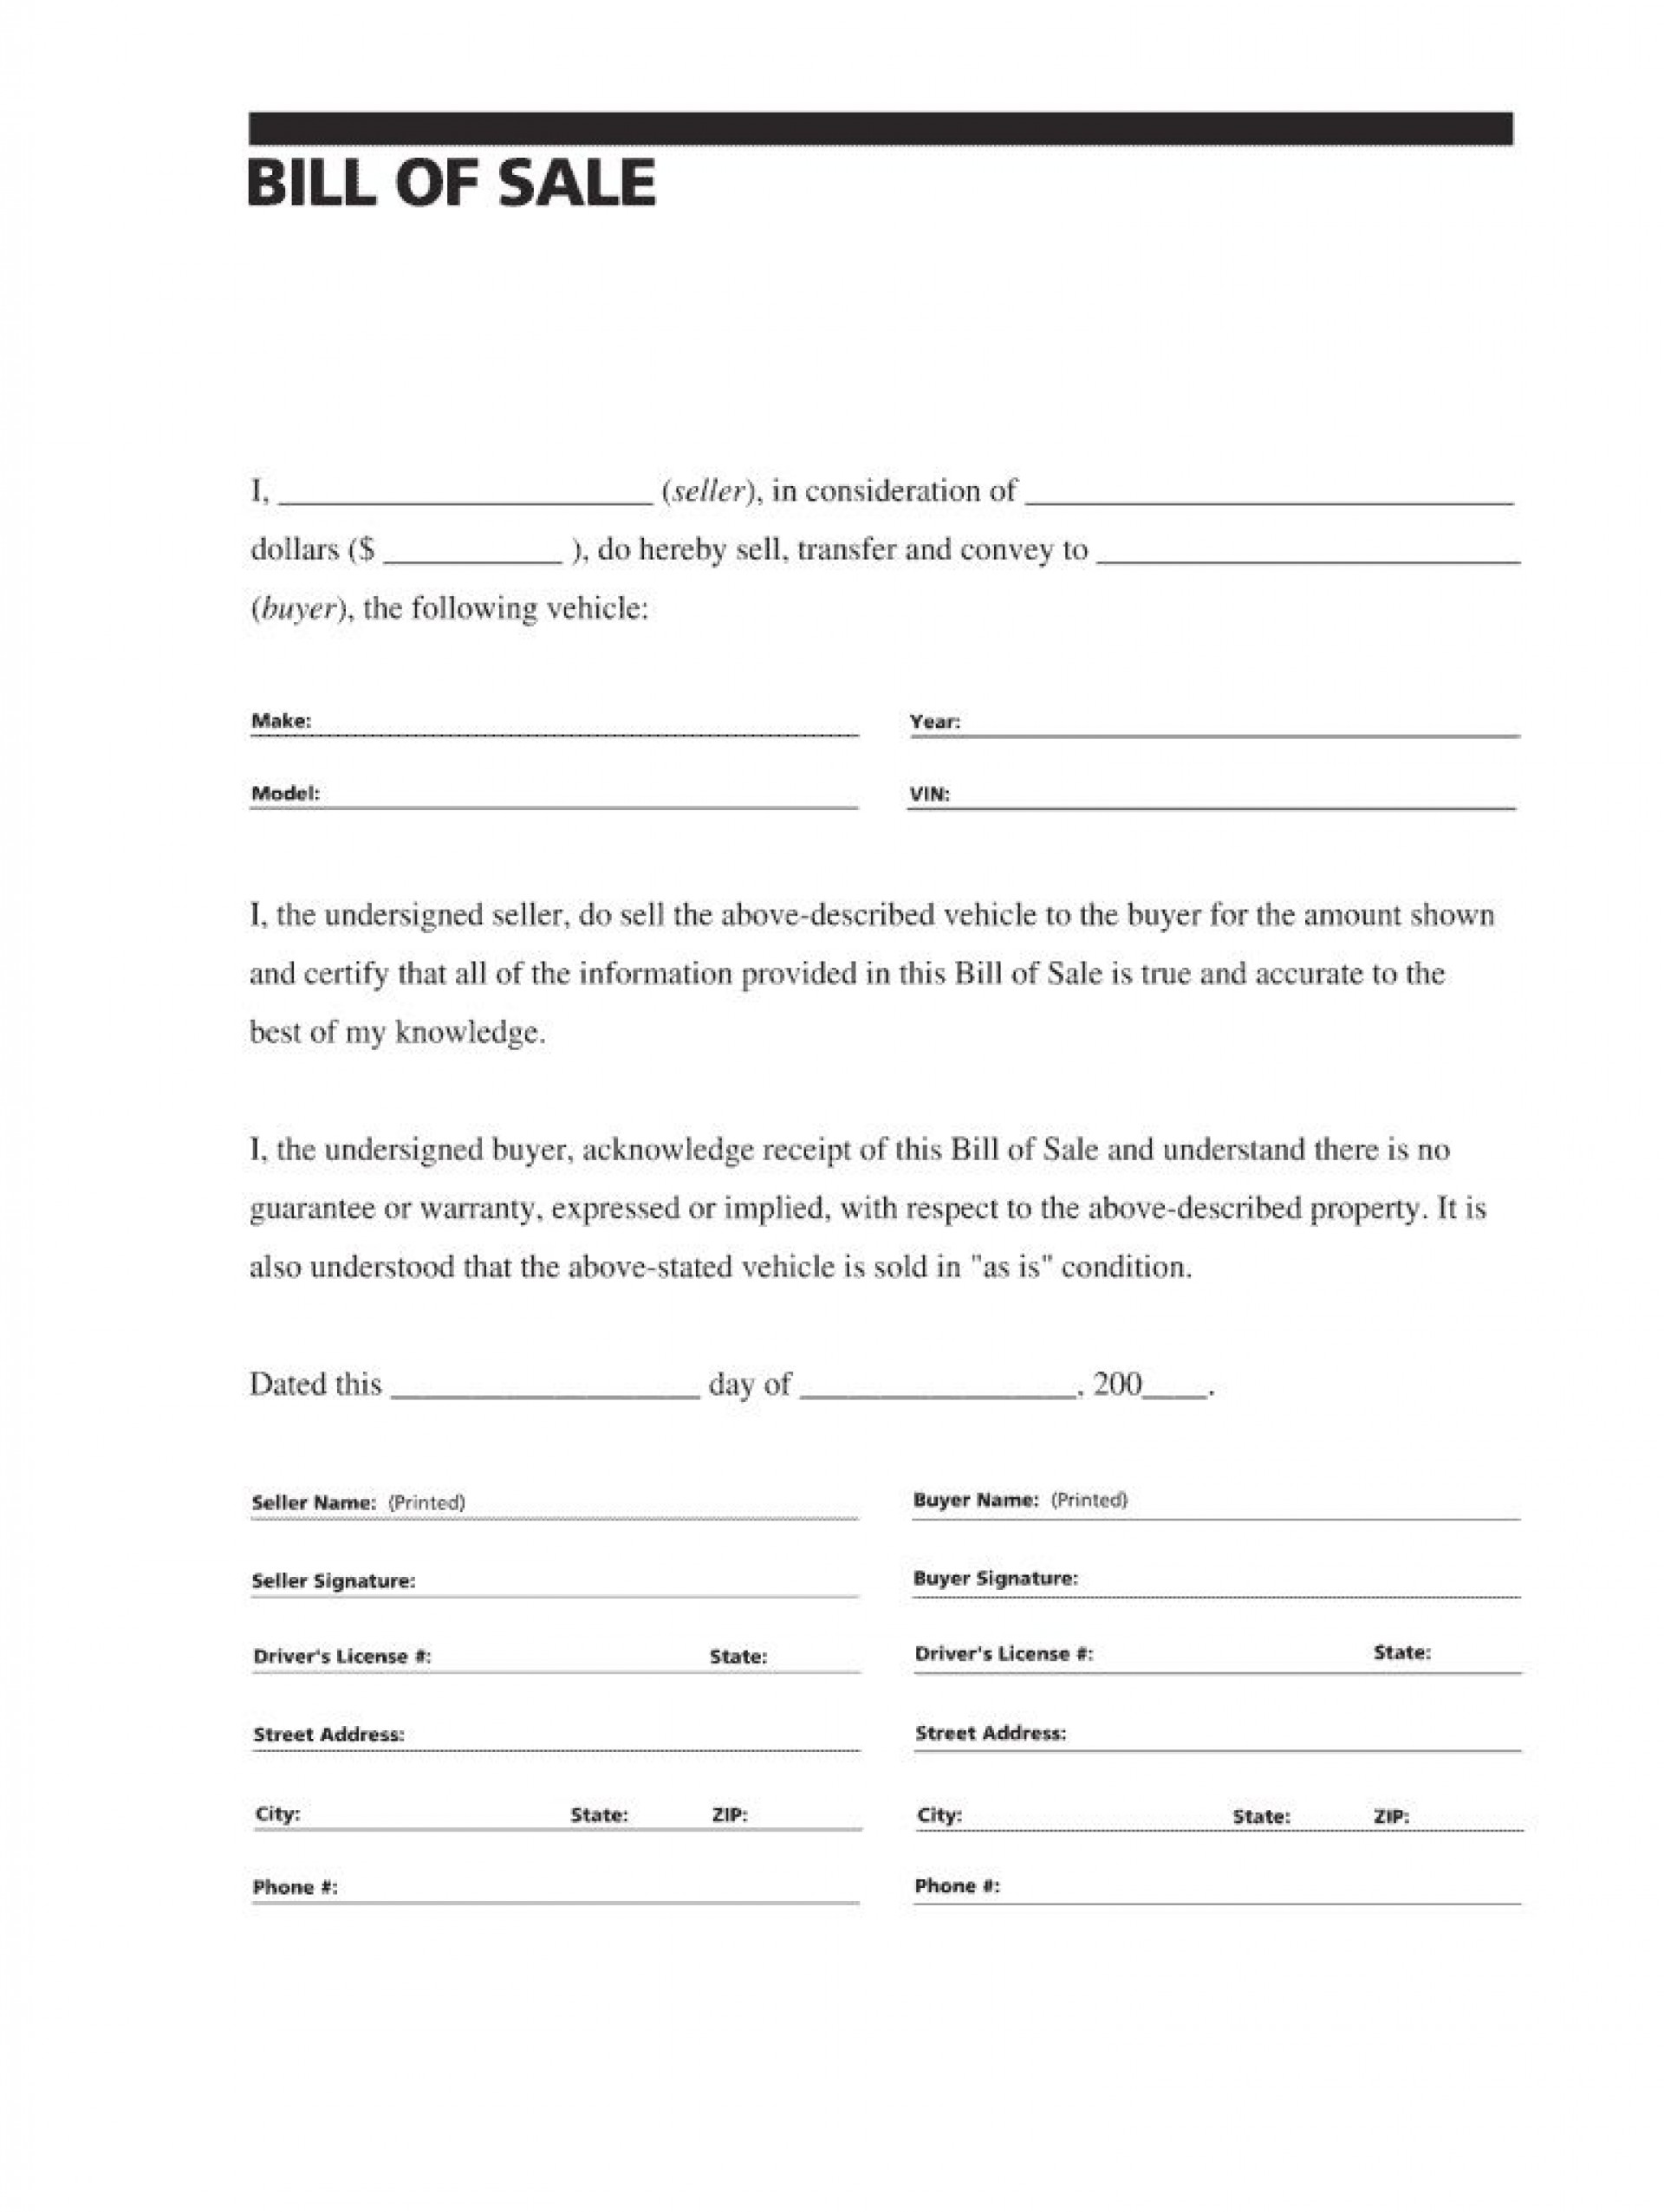 007 Simple Auto Bill Of Sale Template Picture  Word Free Texa Form Pdf Vehicle Fillable Canada1920